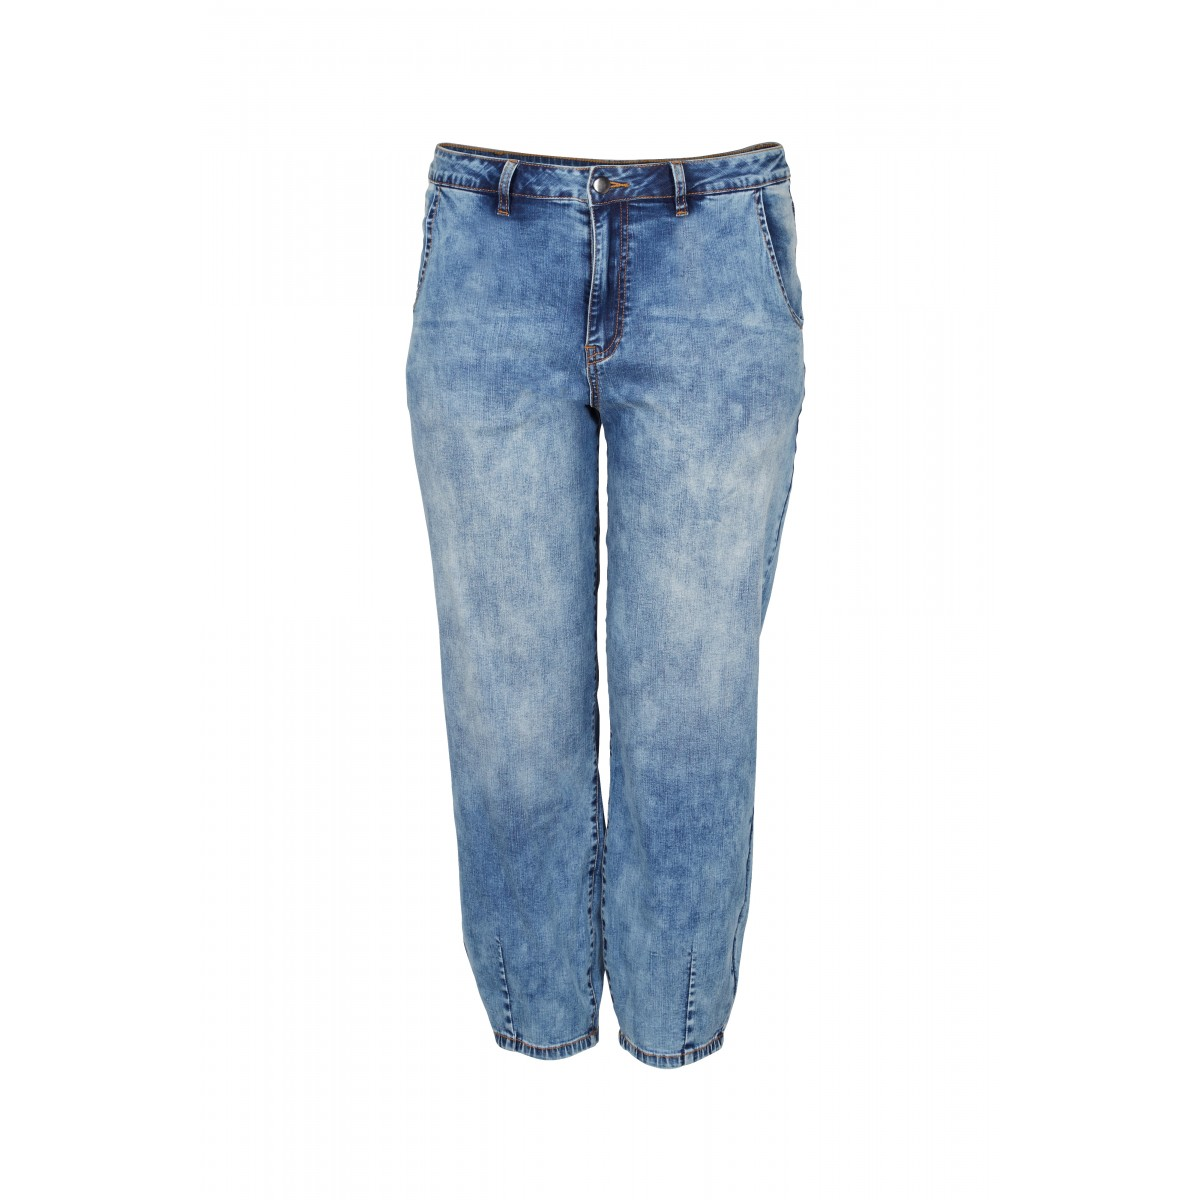 Zoey 203-3917 FIA BAGGY JEANS